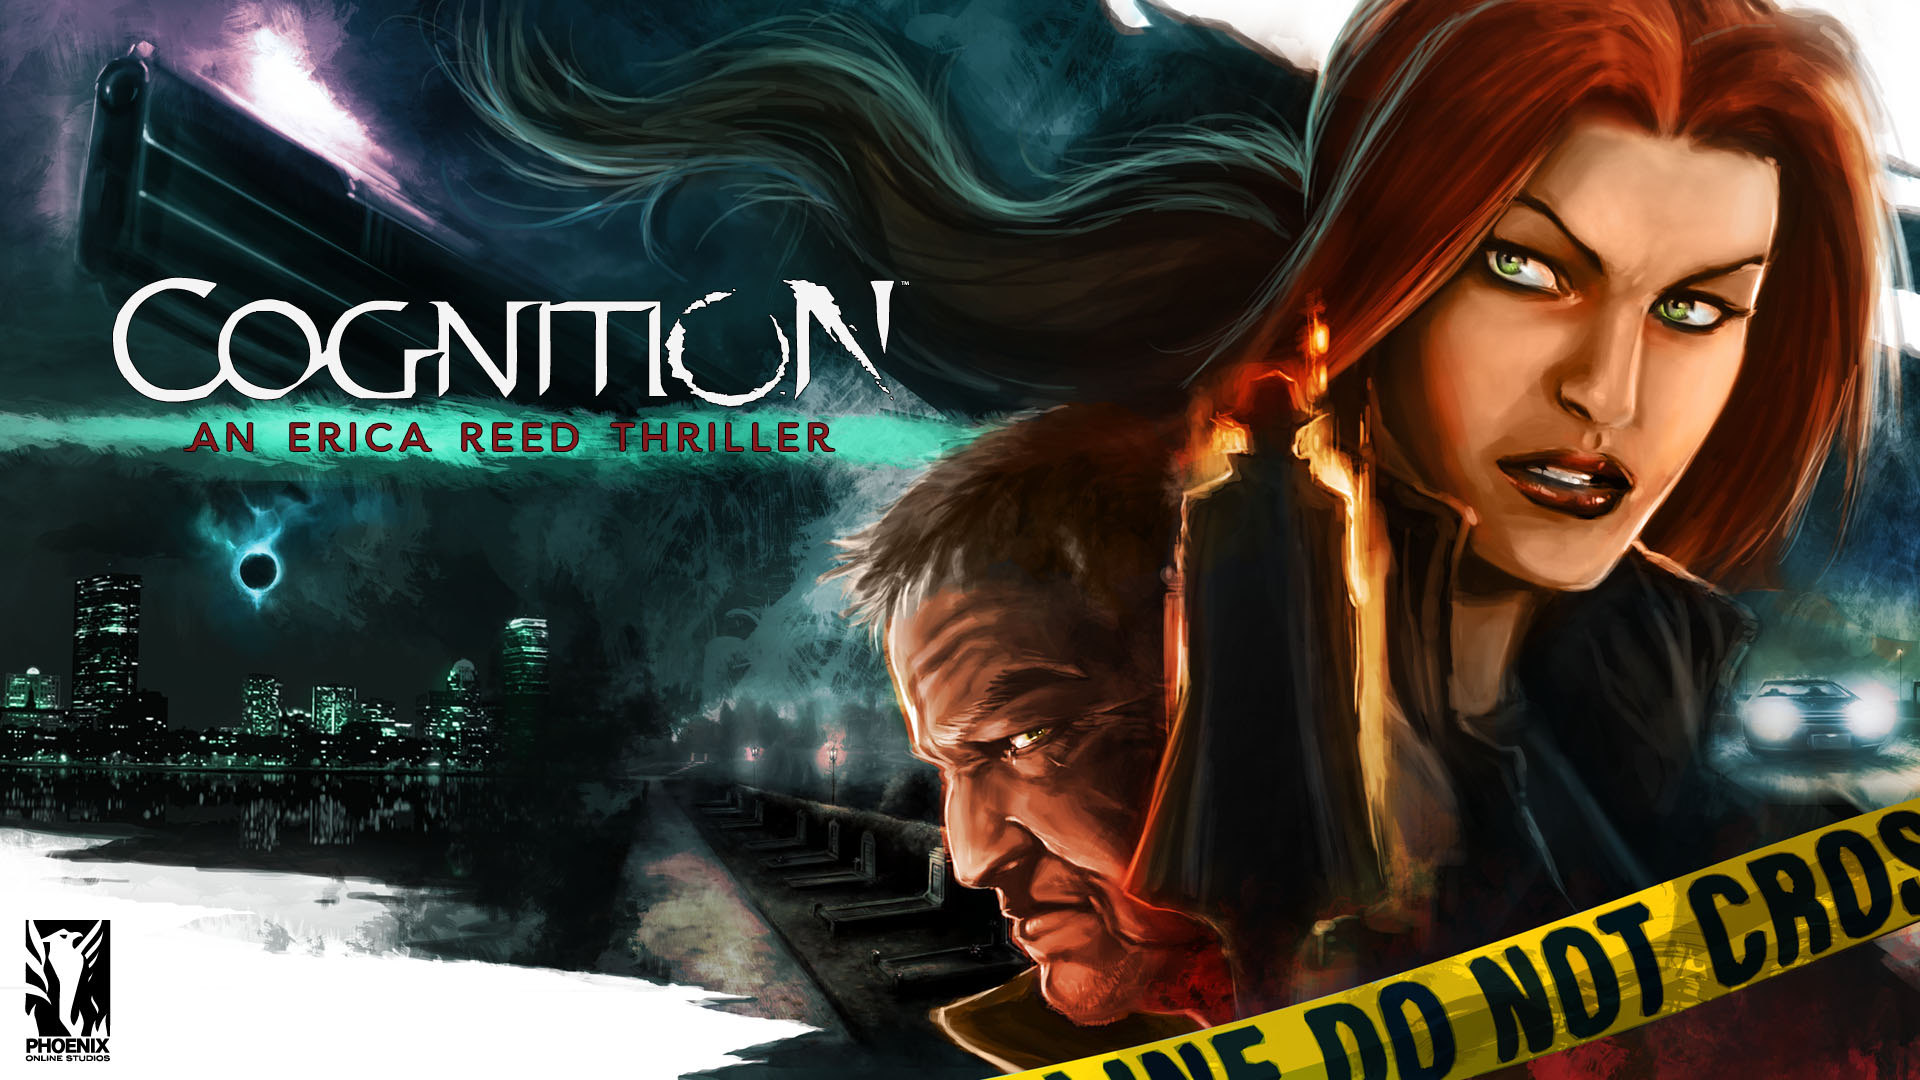 Cognition – An Erica Reed Thriller